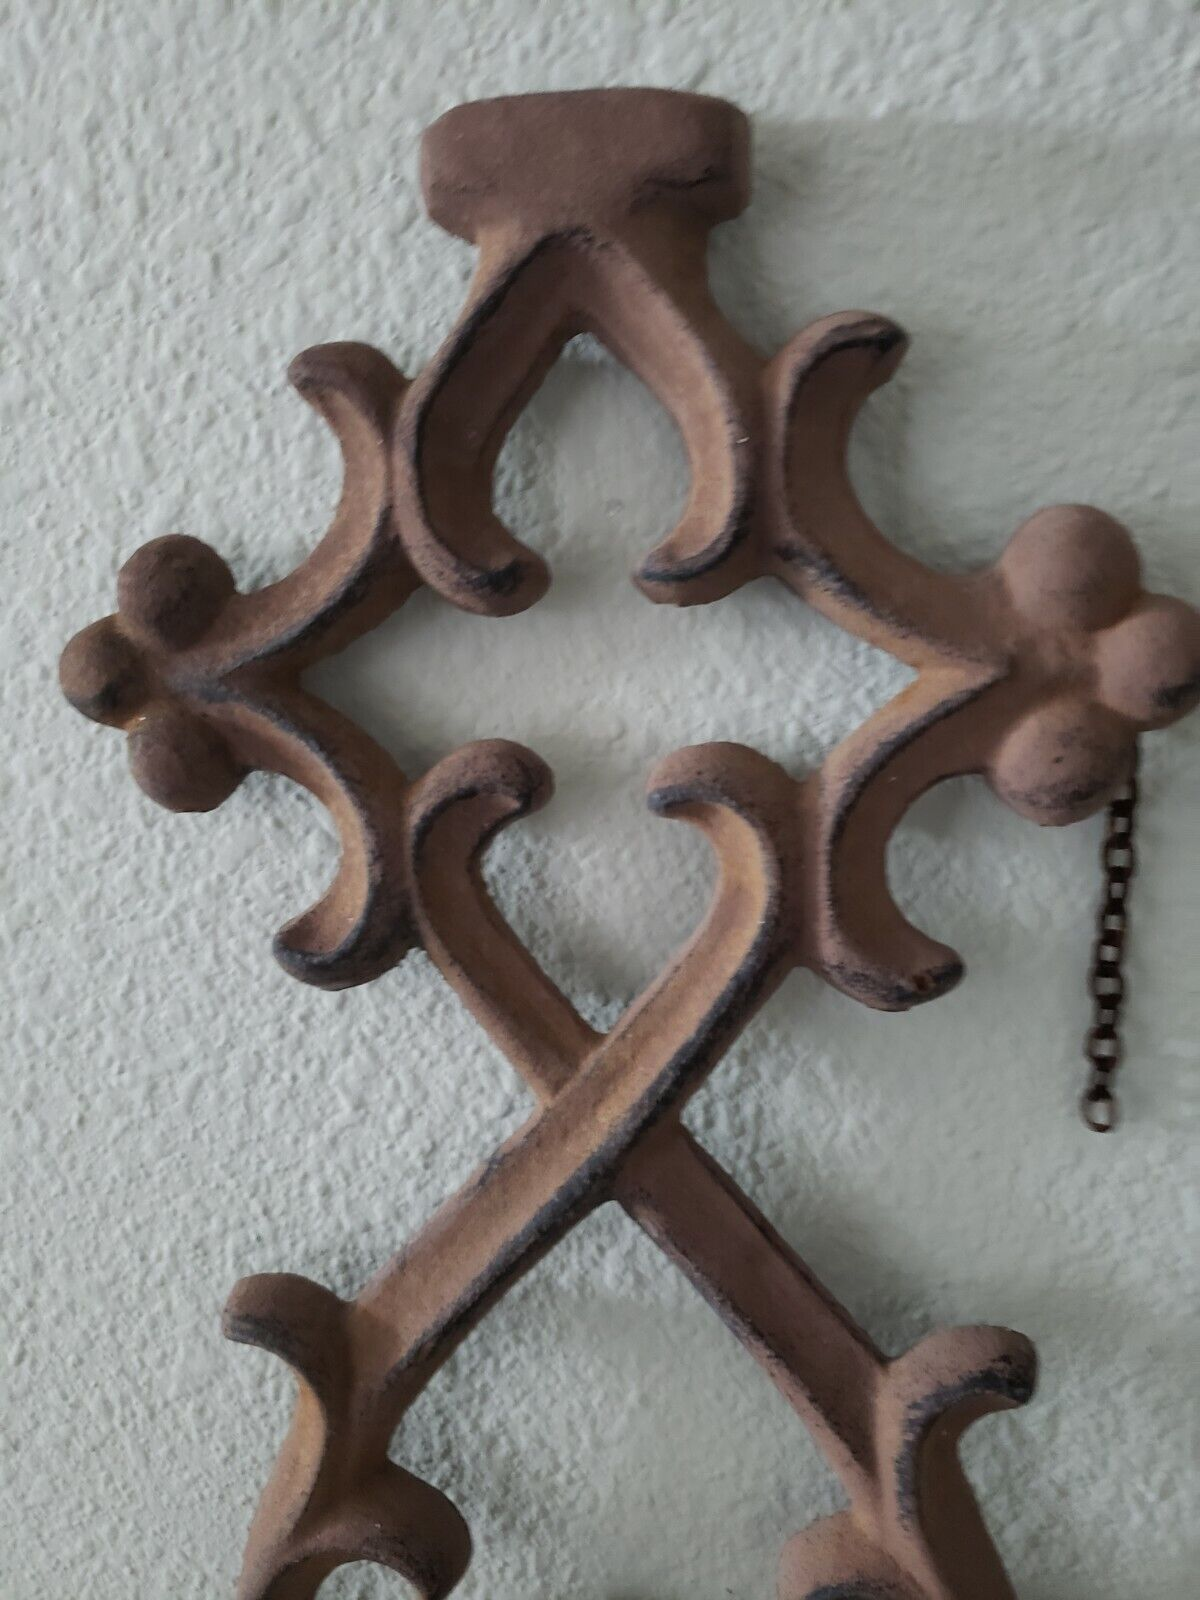 Cast Iron Wall Hanging Home Deco 7.25x28 Vintage  - $39.99